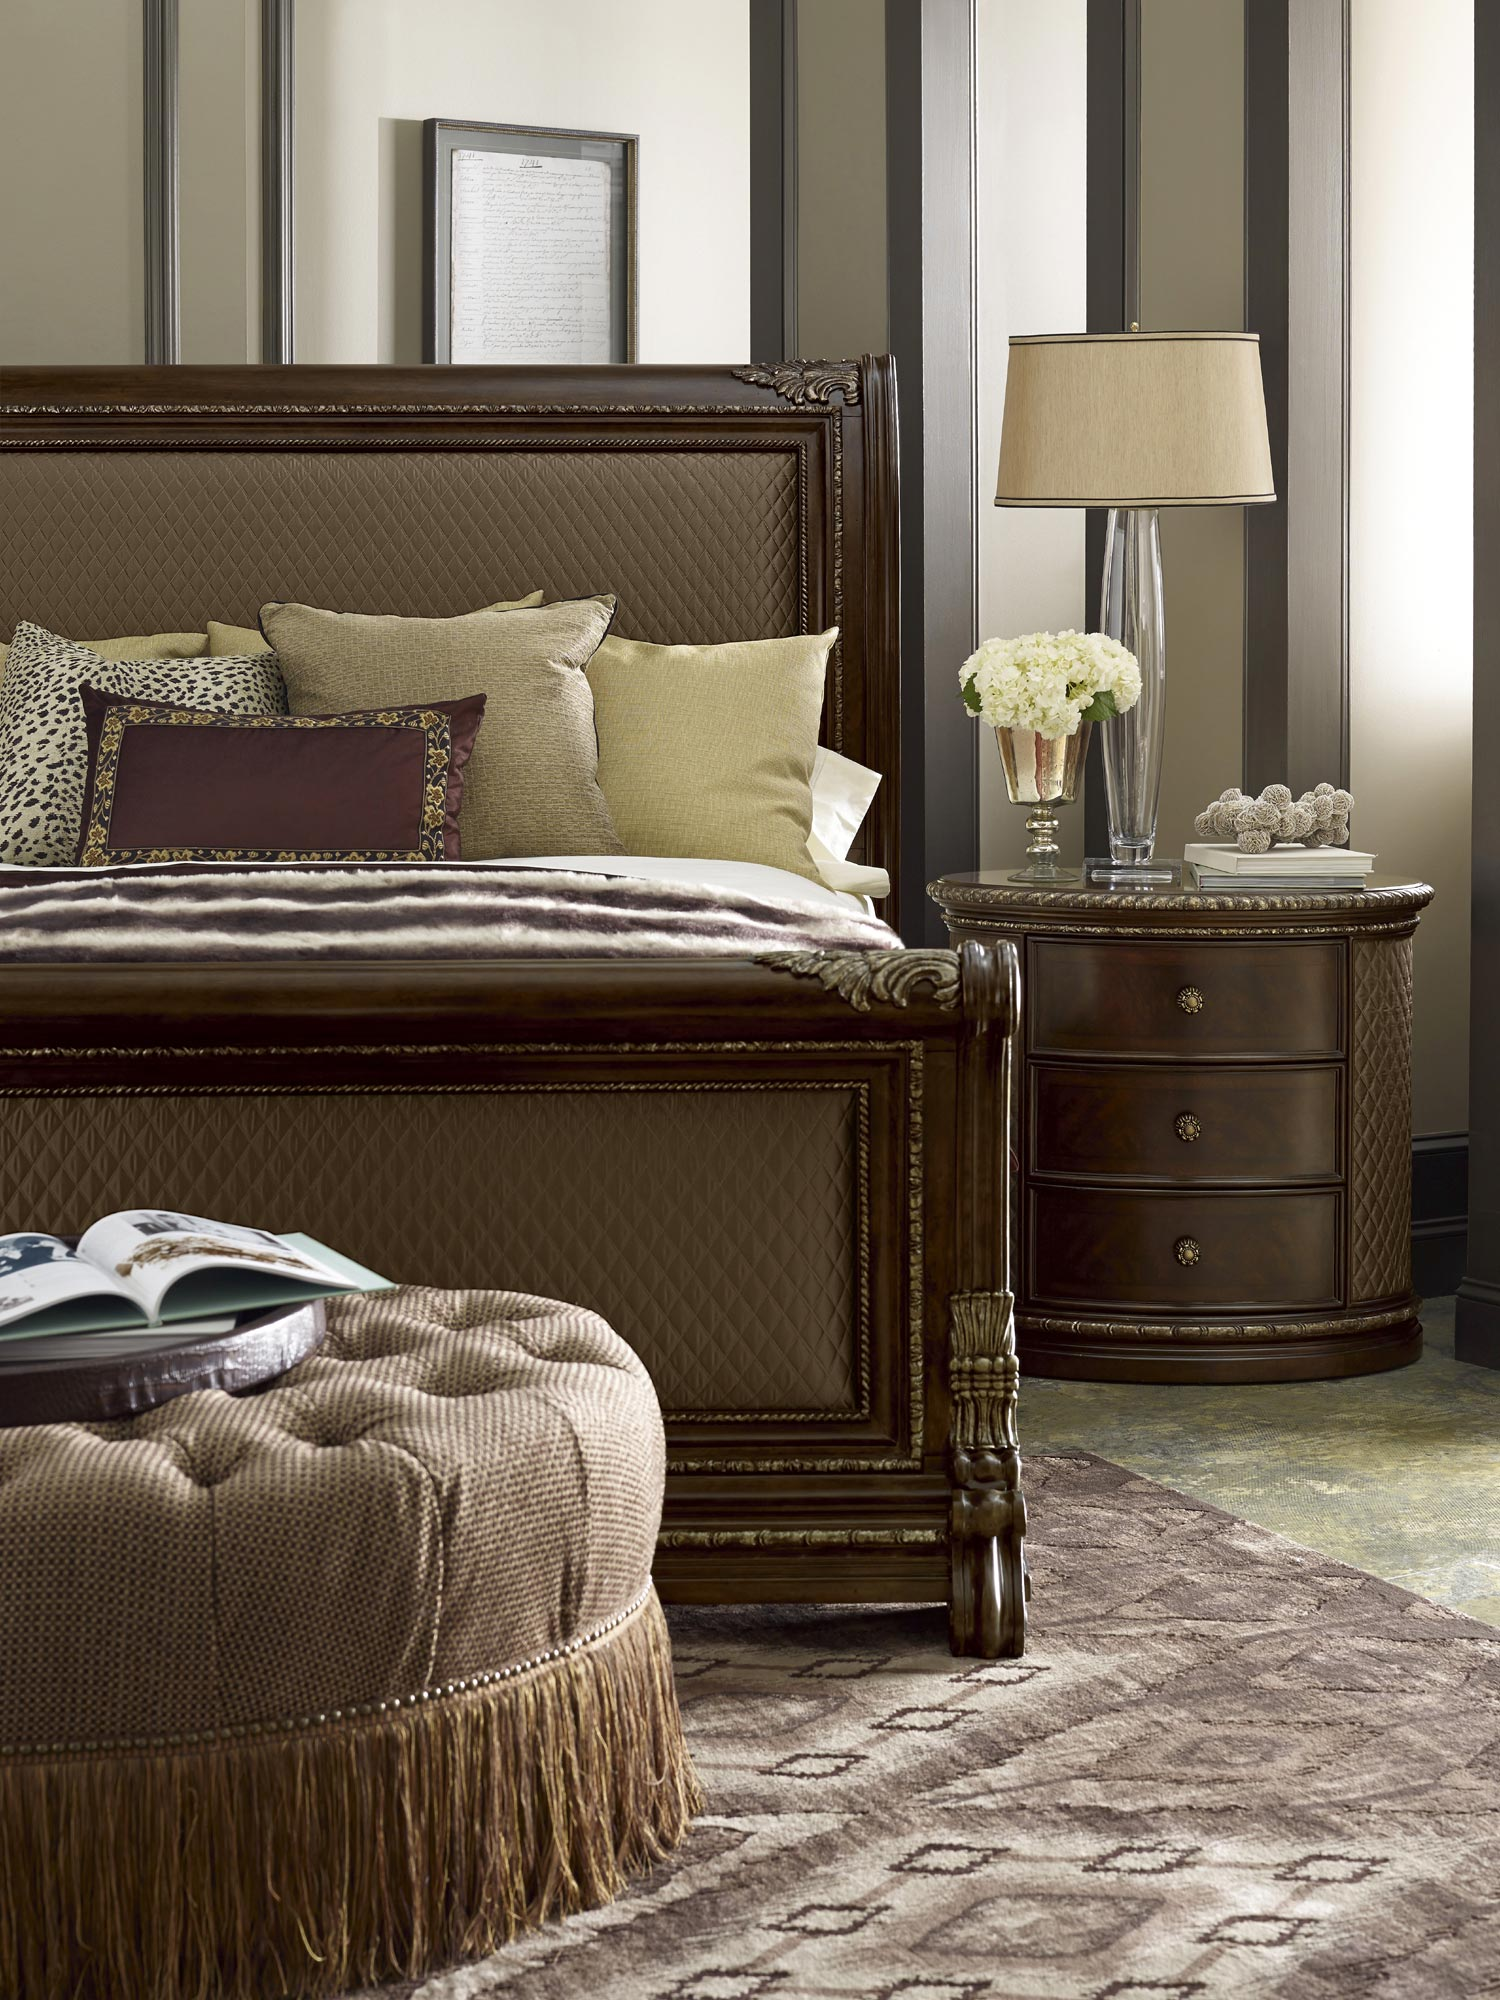 Gables Queen Upholstered Sleigh Bed - Art Furniture - Home